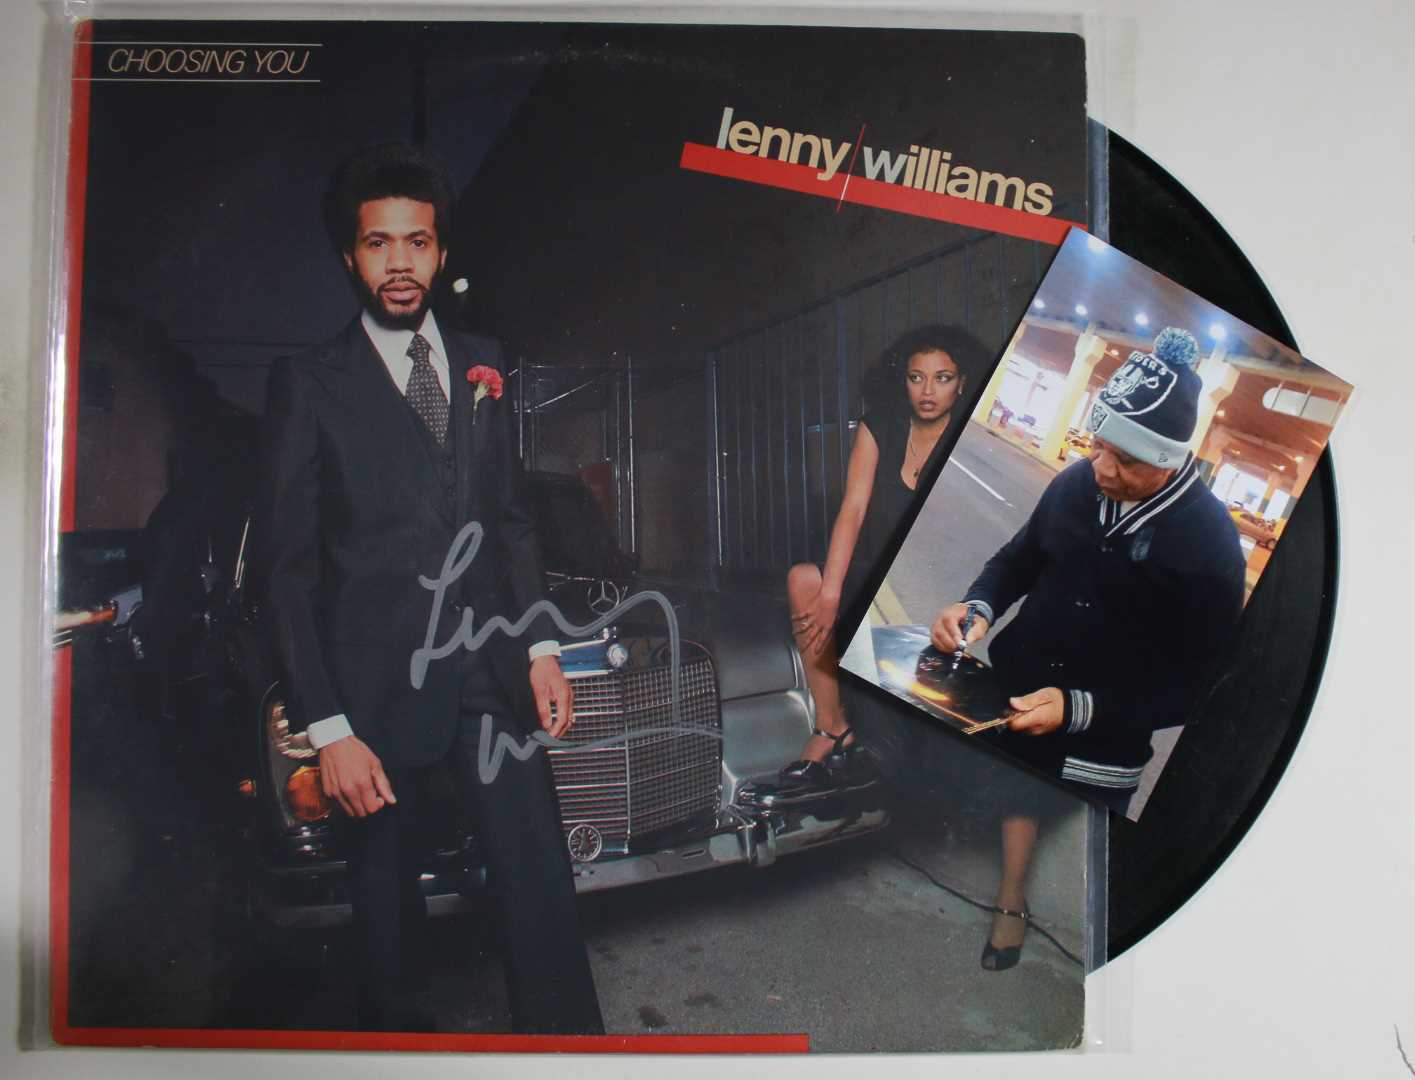 Primary image for Lenny Williams Signed Autographed Record Album w/ Proof Photo